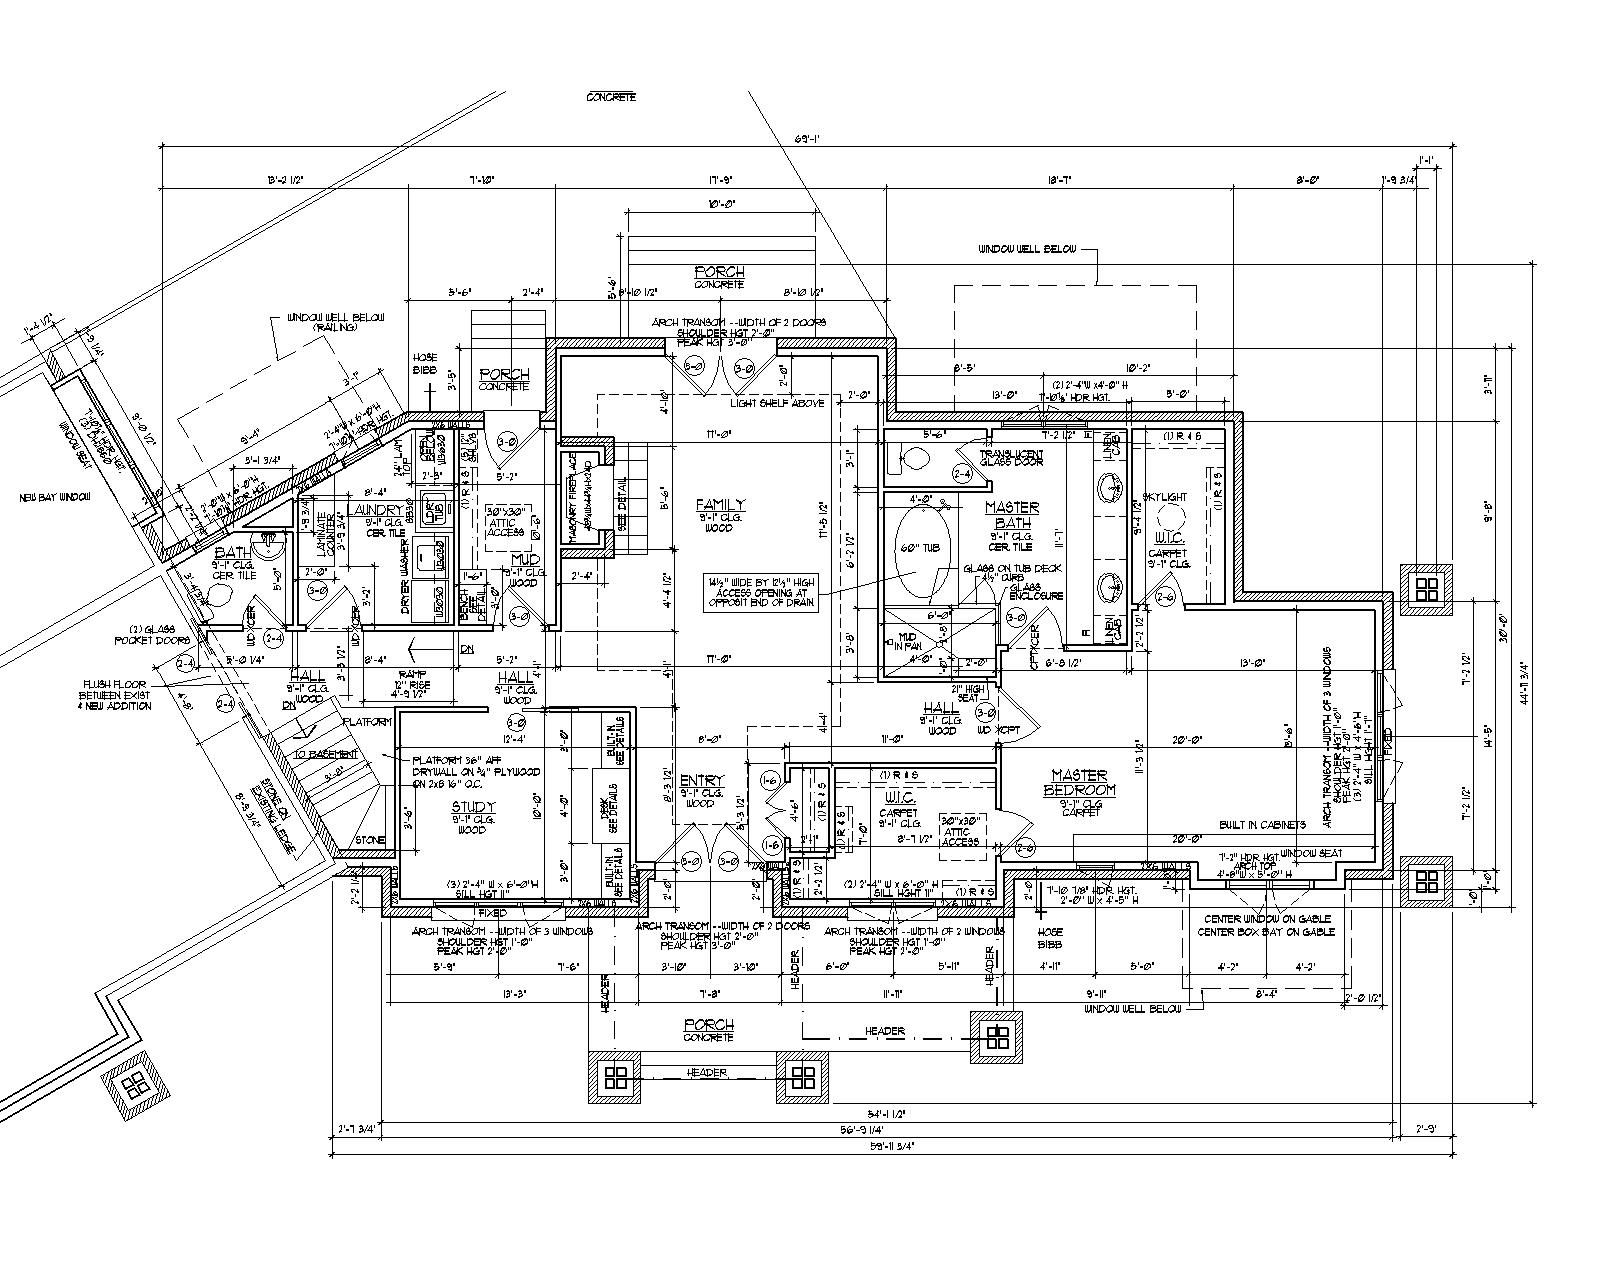 2d autocad house plans residential building drawings cad Autocad house drawings